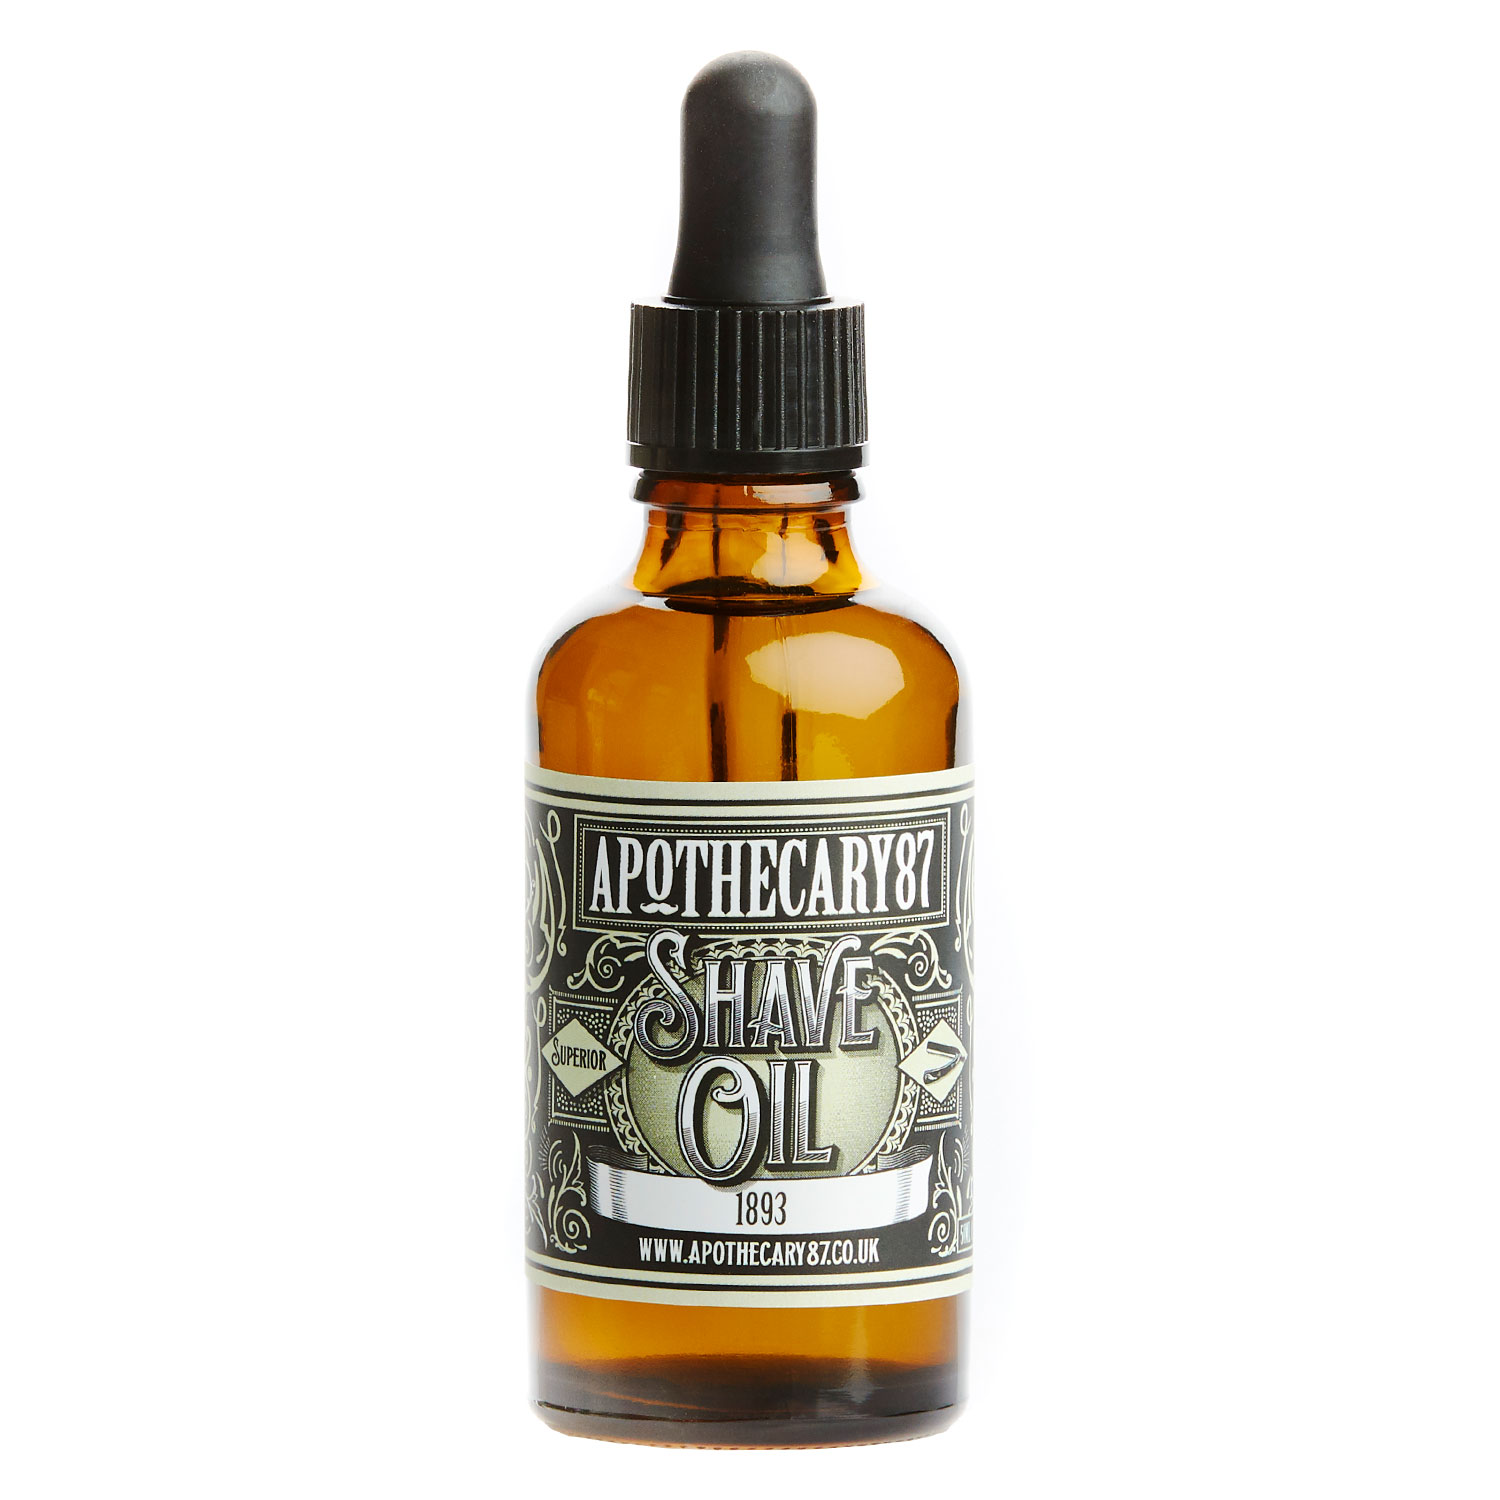 Apothecary87 Grooming - Shave Oil 1893 Fragrance